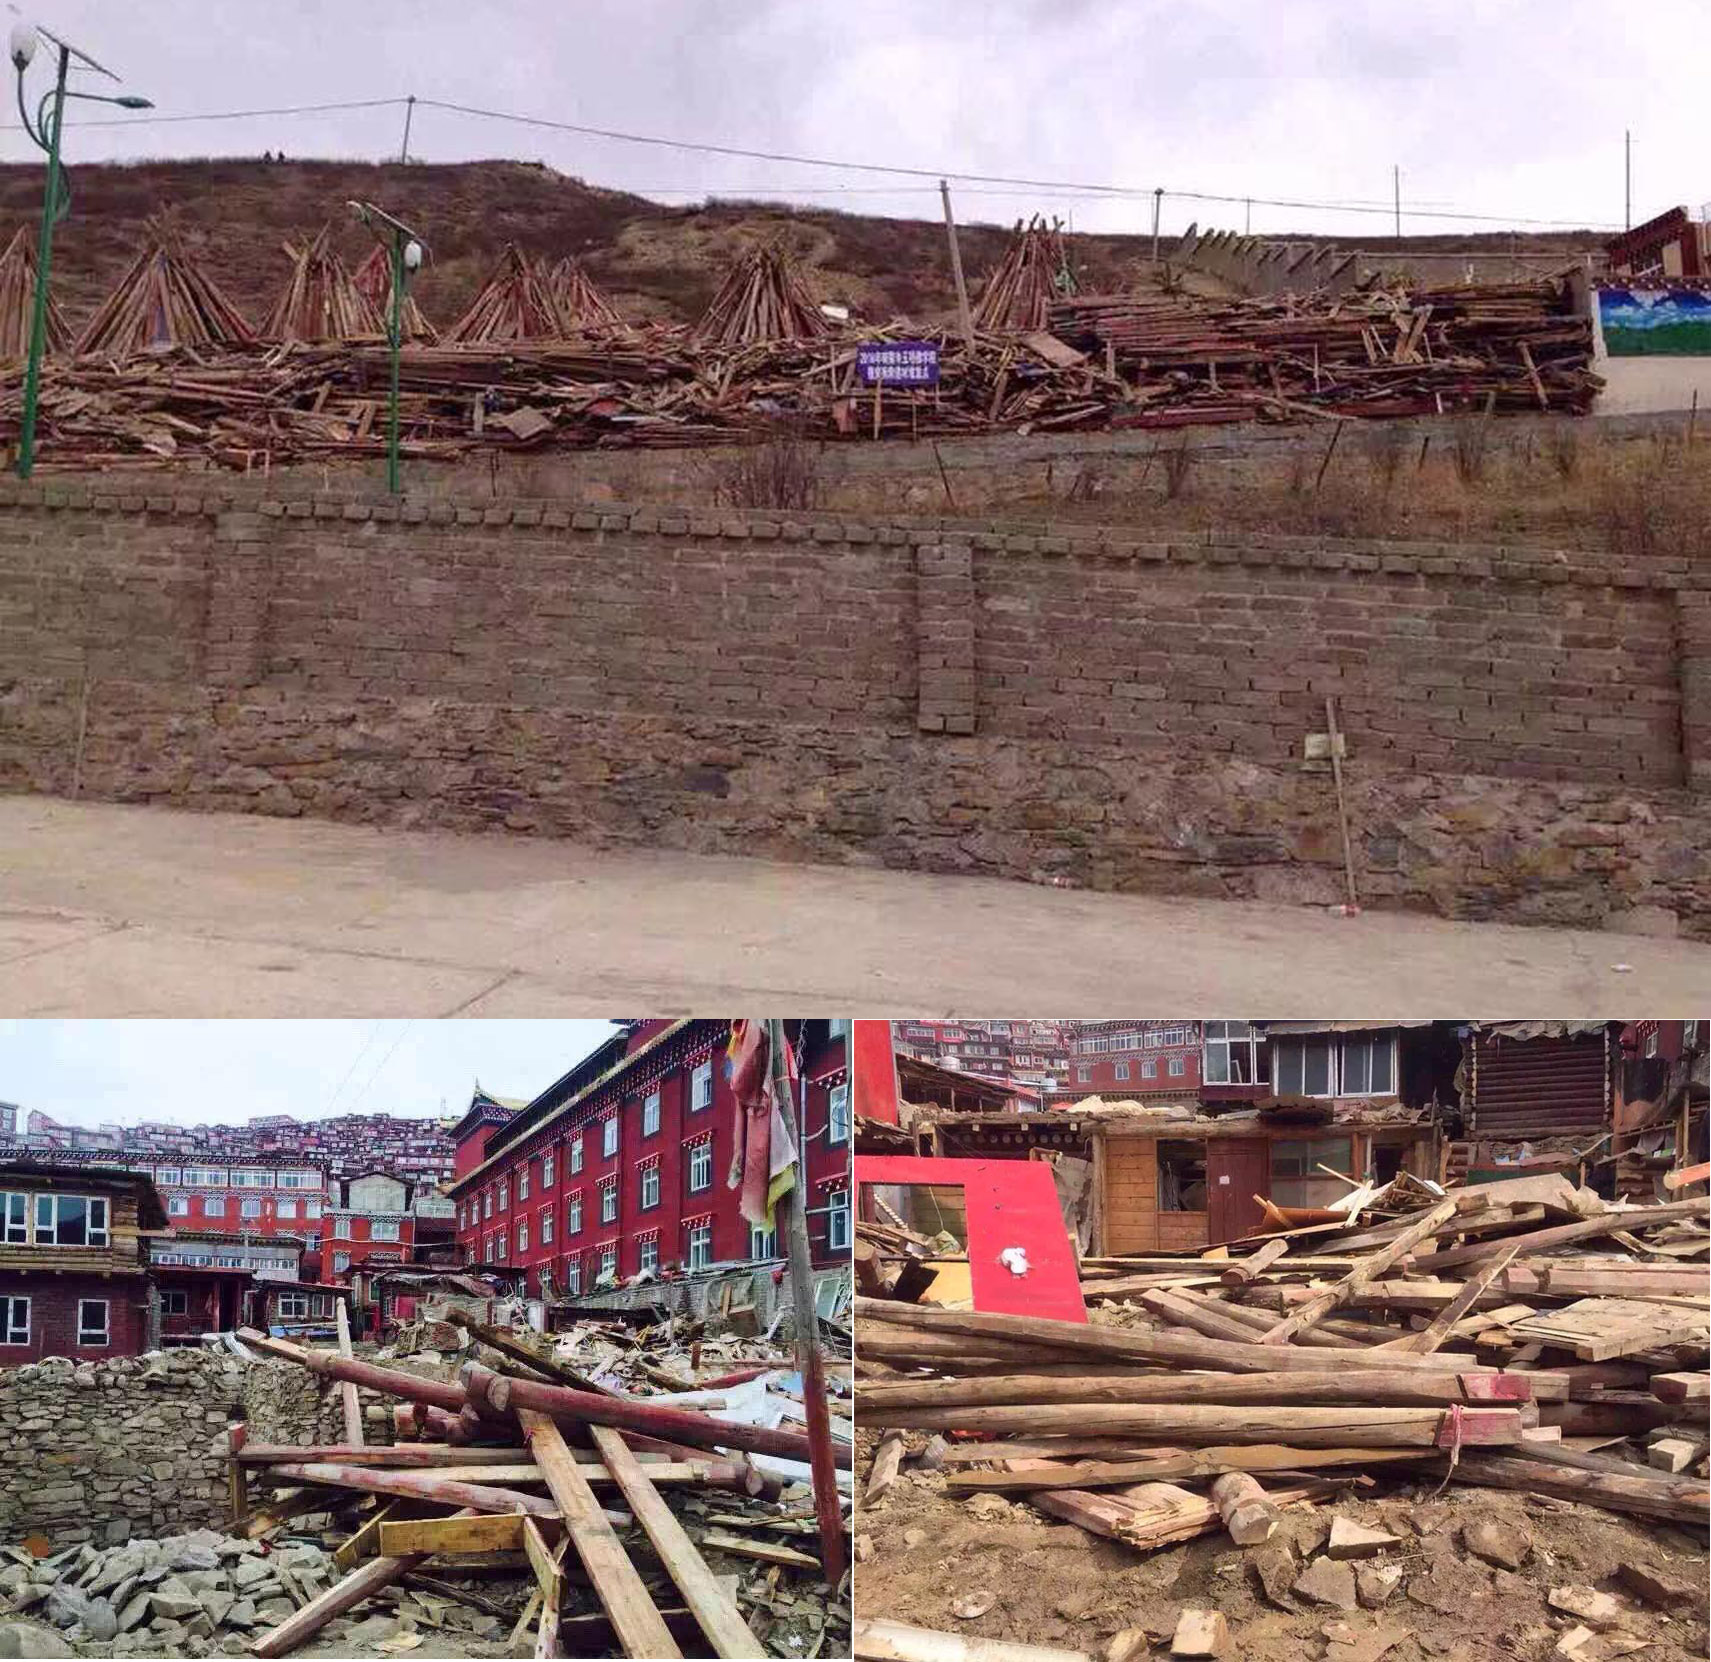 Photos circulated on social media show advance dismantling of dwellings before the arrival of government demolition crew at Larung Gar